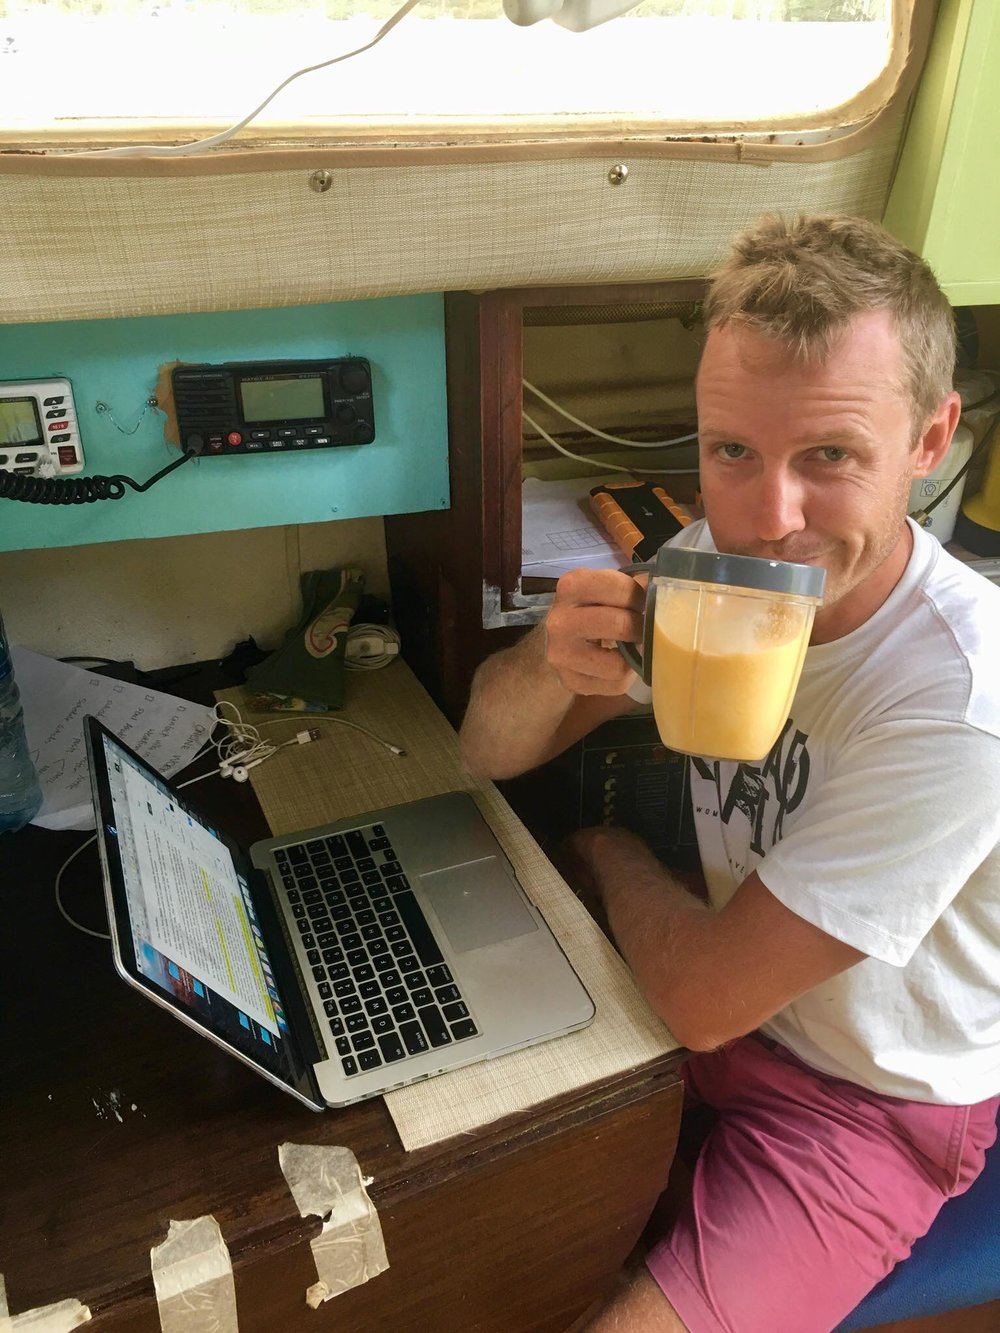 Liveaboard Day 106 - 108: New Haircut, Meeting Local People and our Daily Routine 🙏